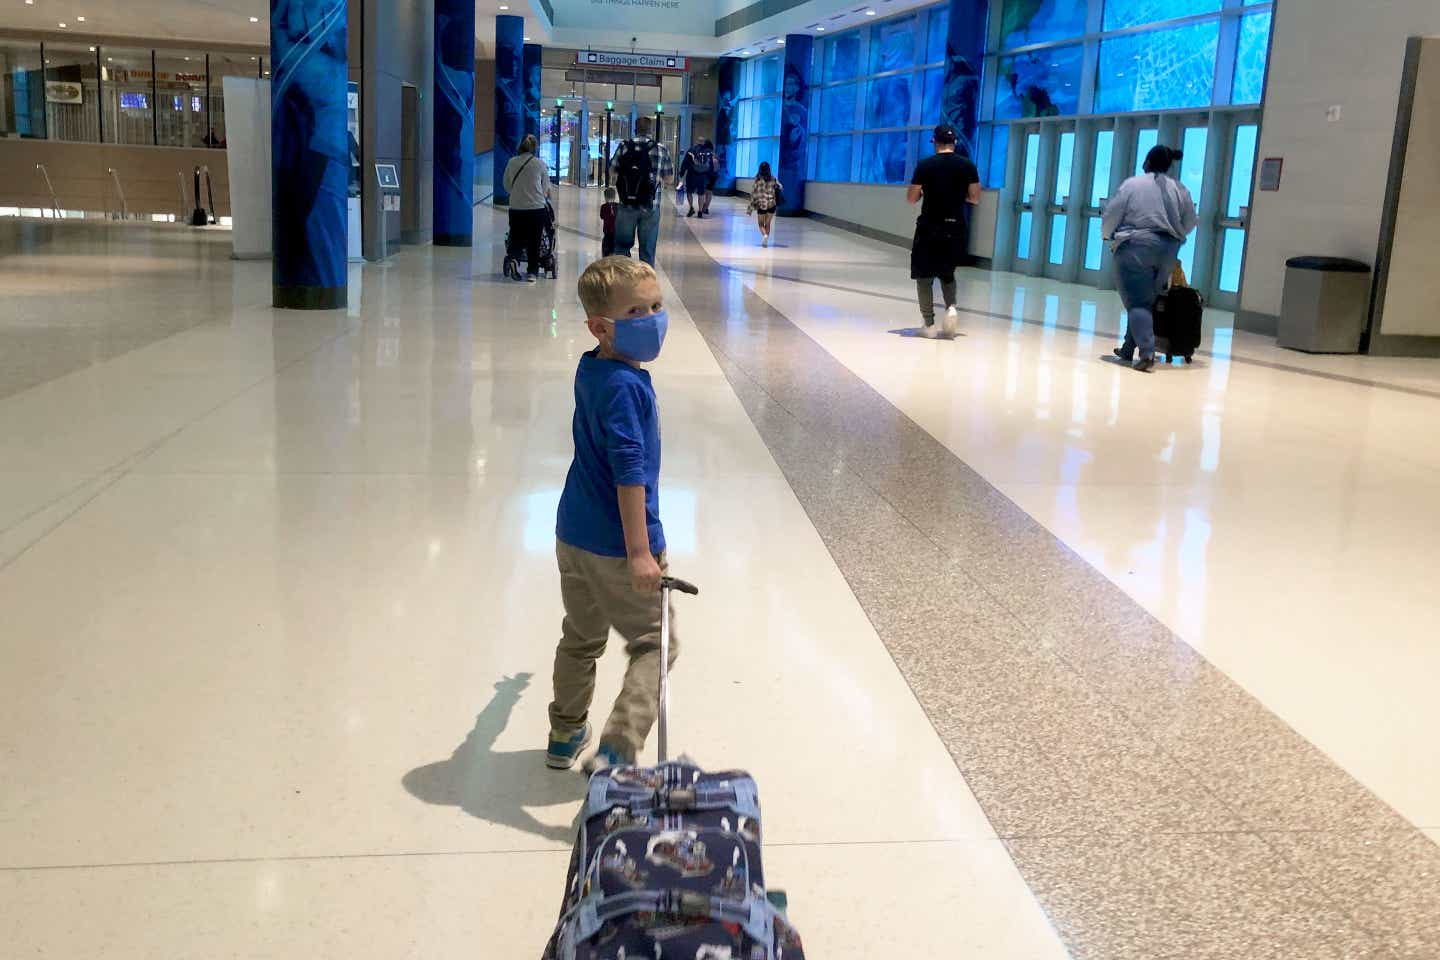 Sarah's son, Logan, pulls his suitcase wearing a mask they walk through the terminal.